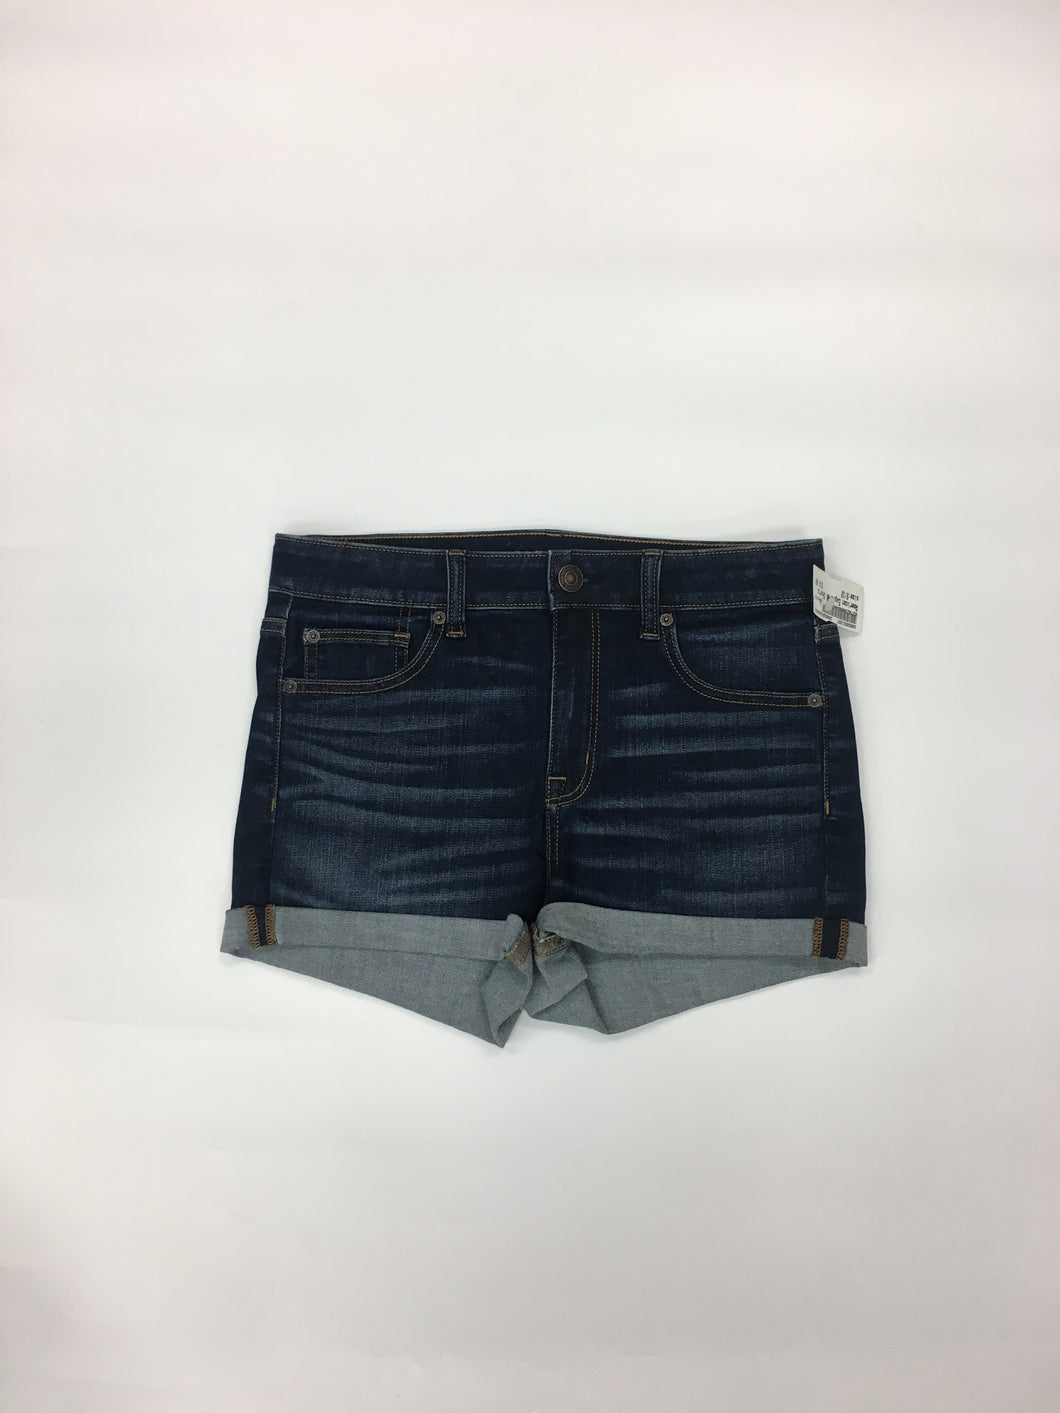 American Eagle Shorts Women's 9/10